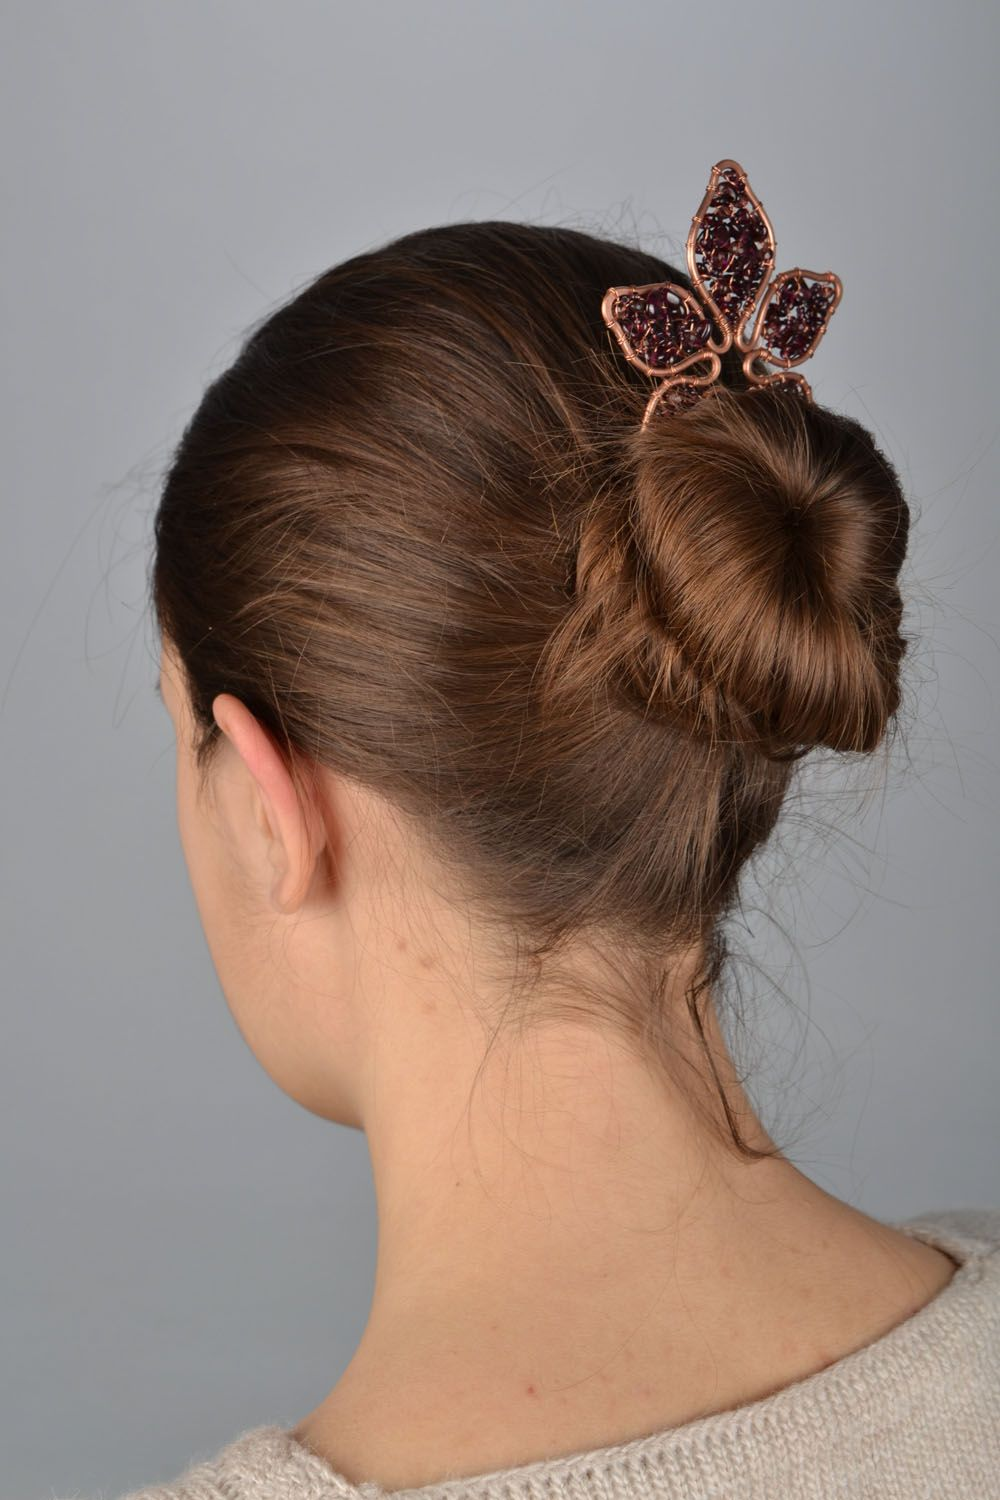 Unusual copper hairpin photo 1